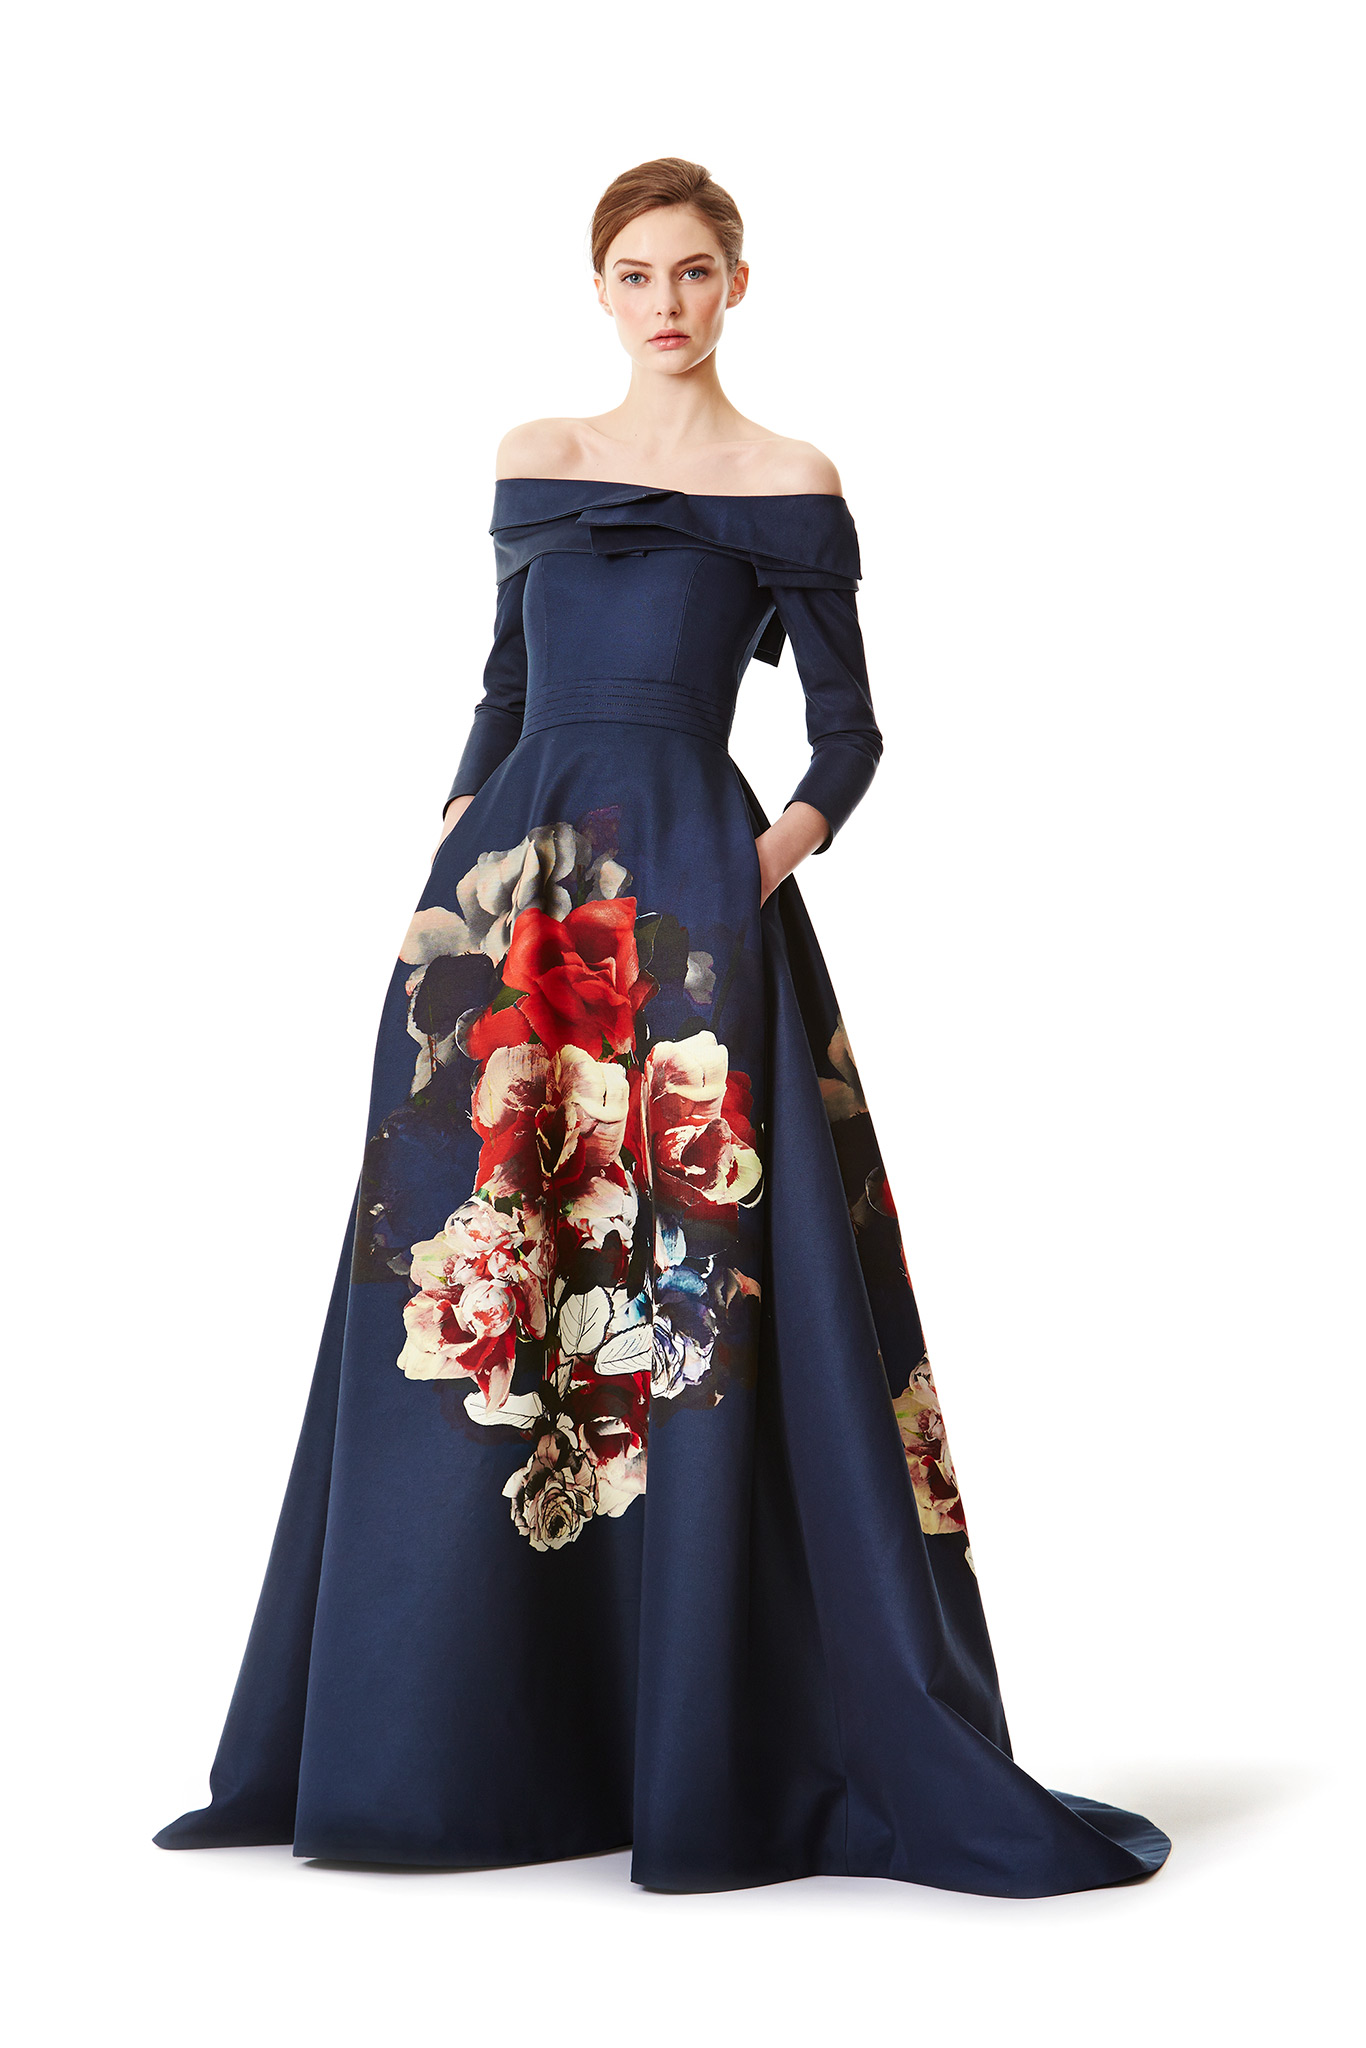 Carolina Herrera Pre-Fall 2015 gown